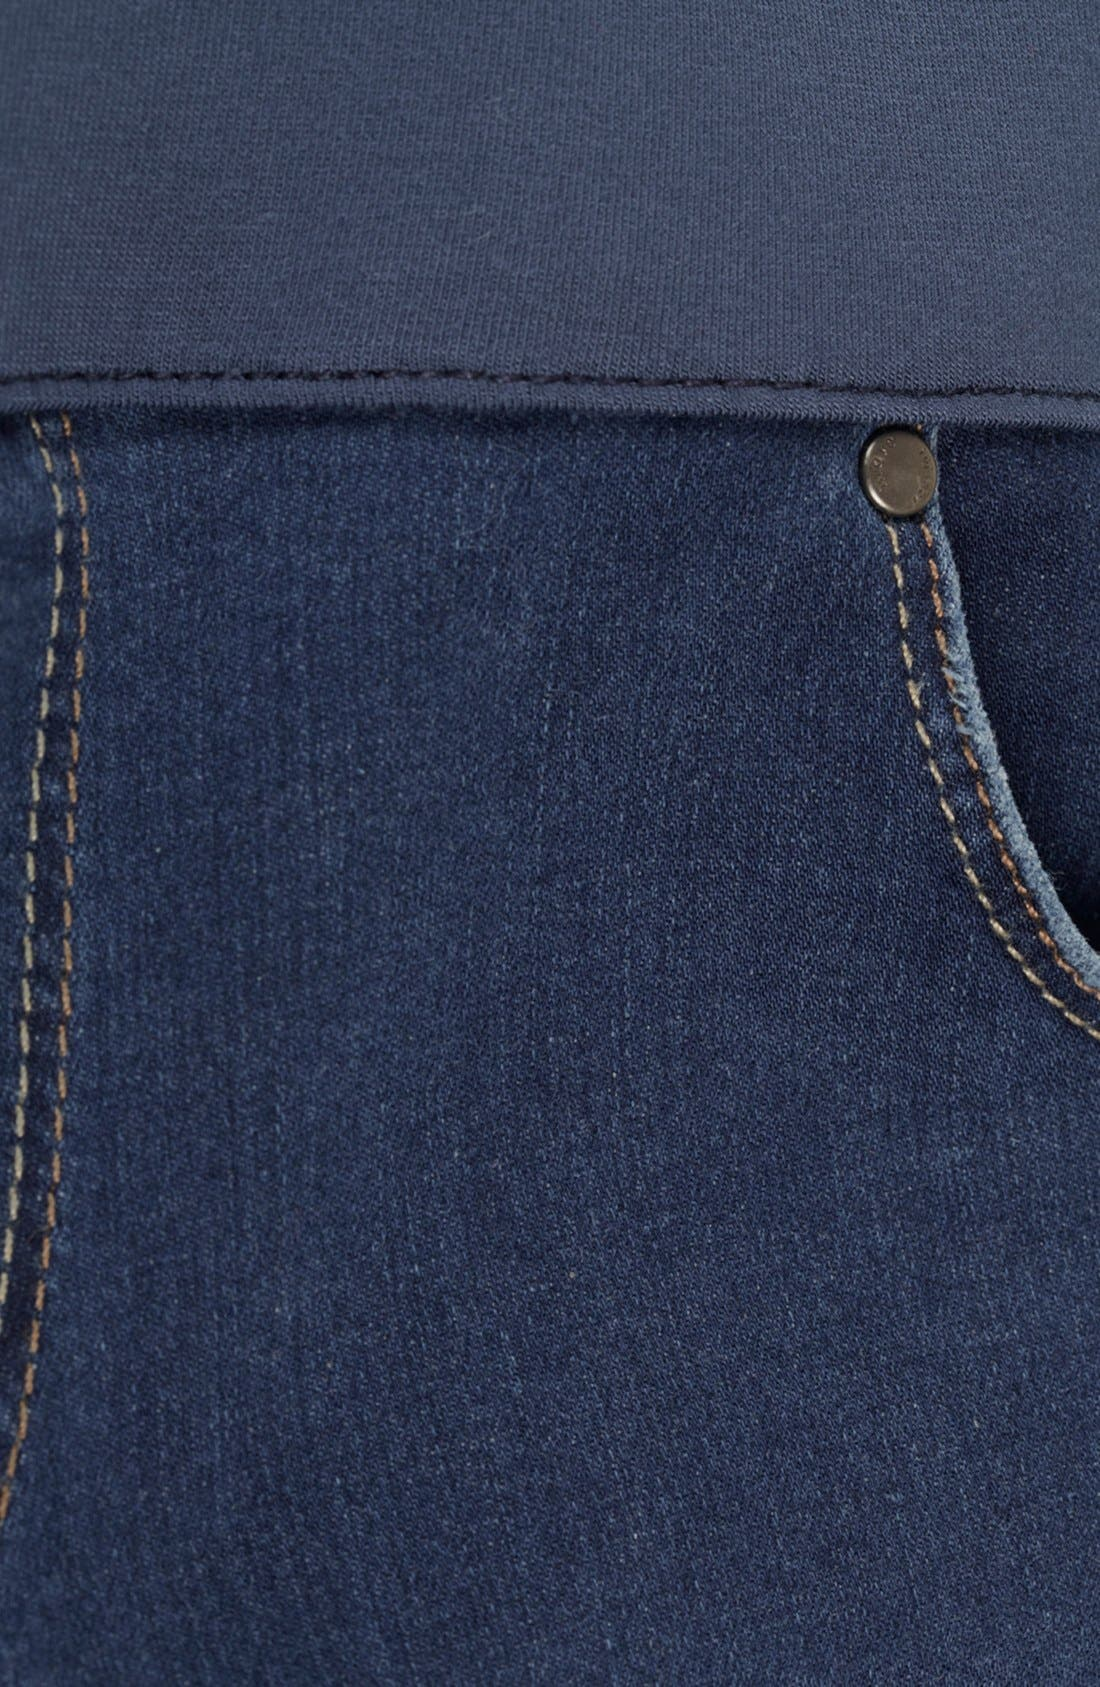 TOPSHOP, 'Leigh' Maternity Jeans, Alternate thumbnail 3, color, 420